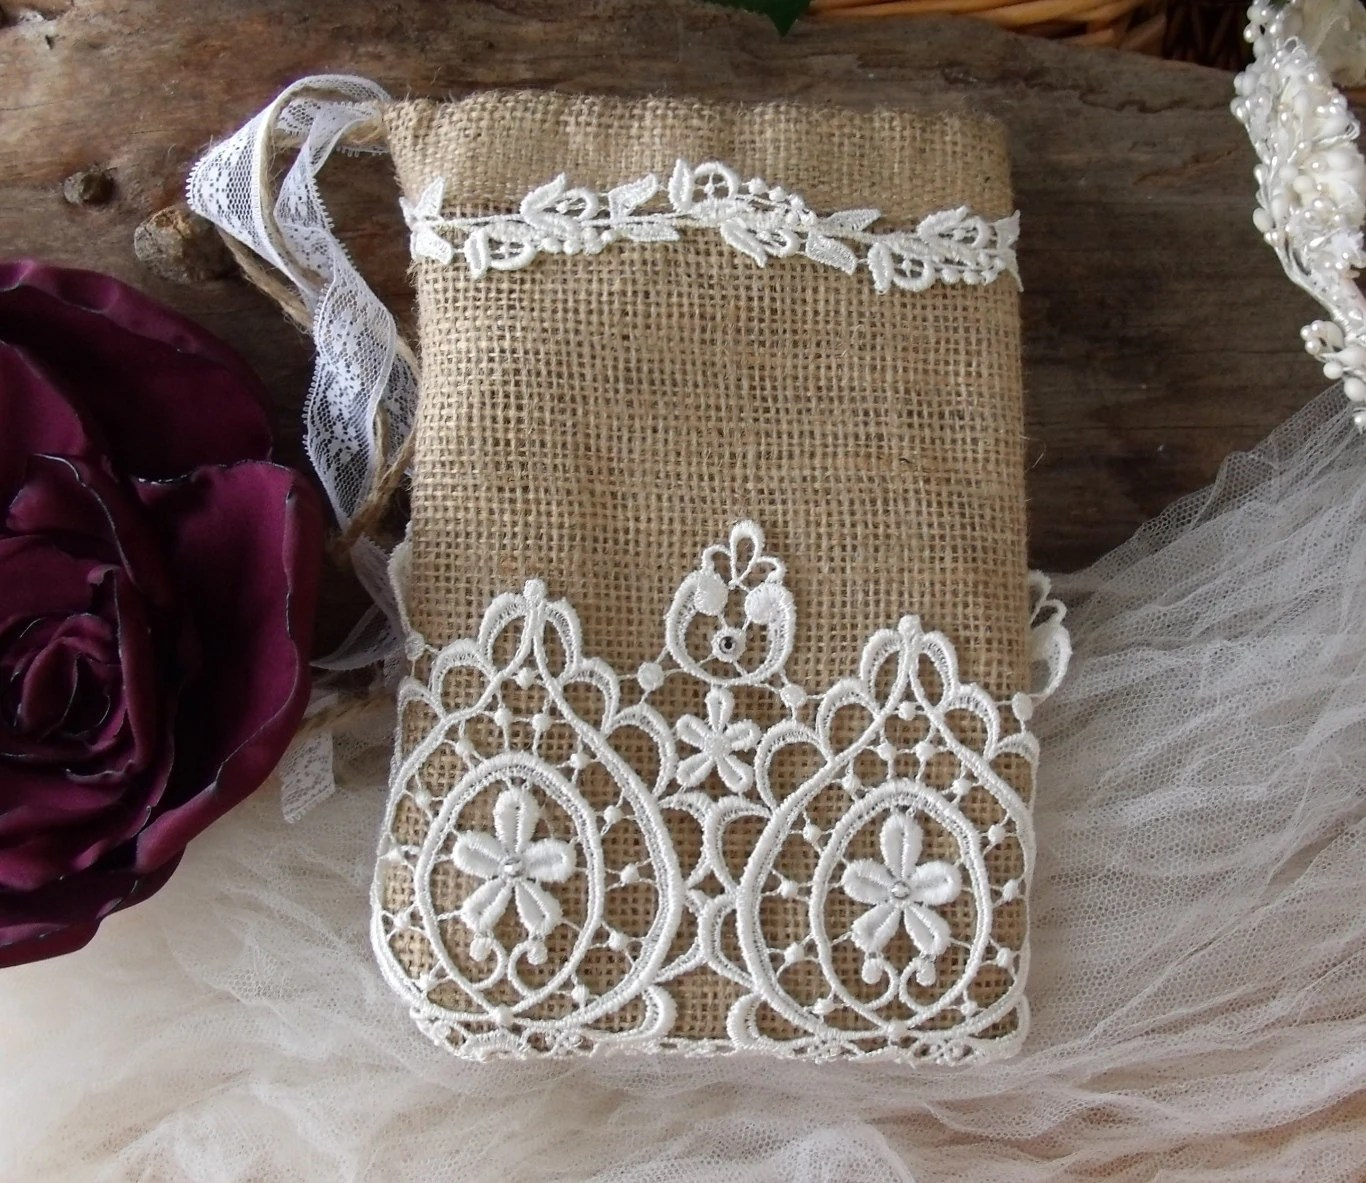 Handmade Bridal drawstring bag Natural burlap & Lace French Country Rustic Wedding dollar dance bag Swarovski Crystals Venice Lace - MilliesCorner